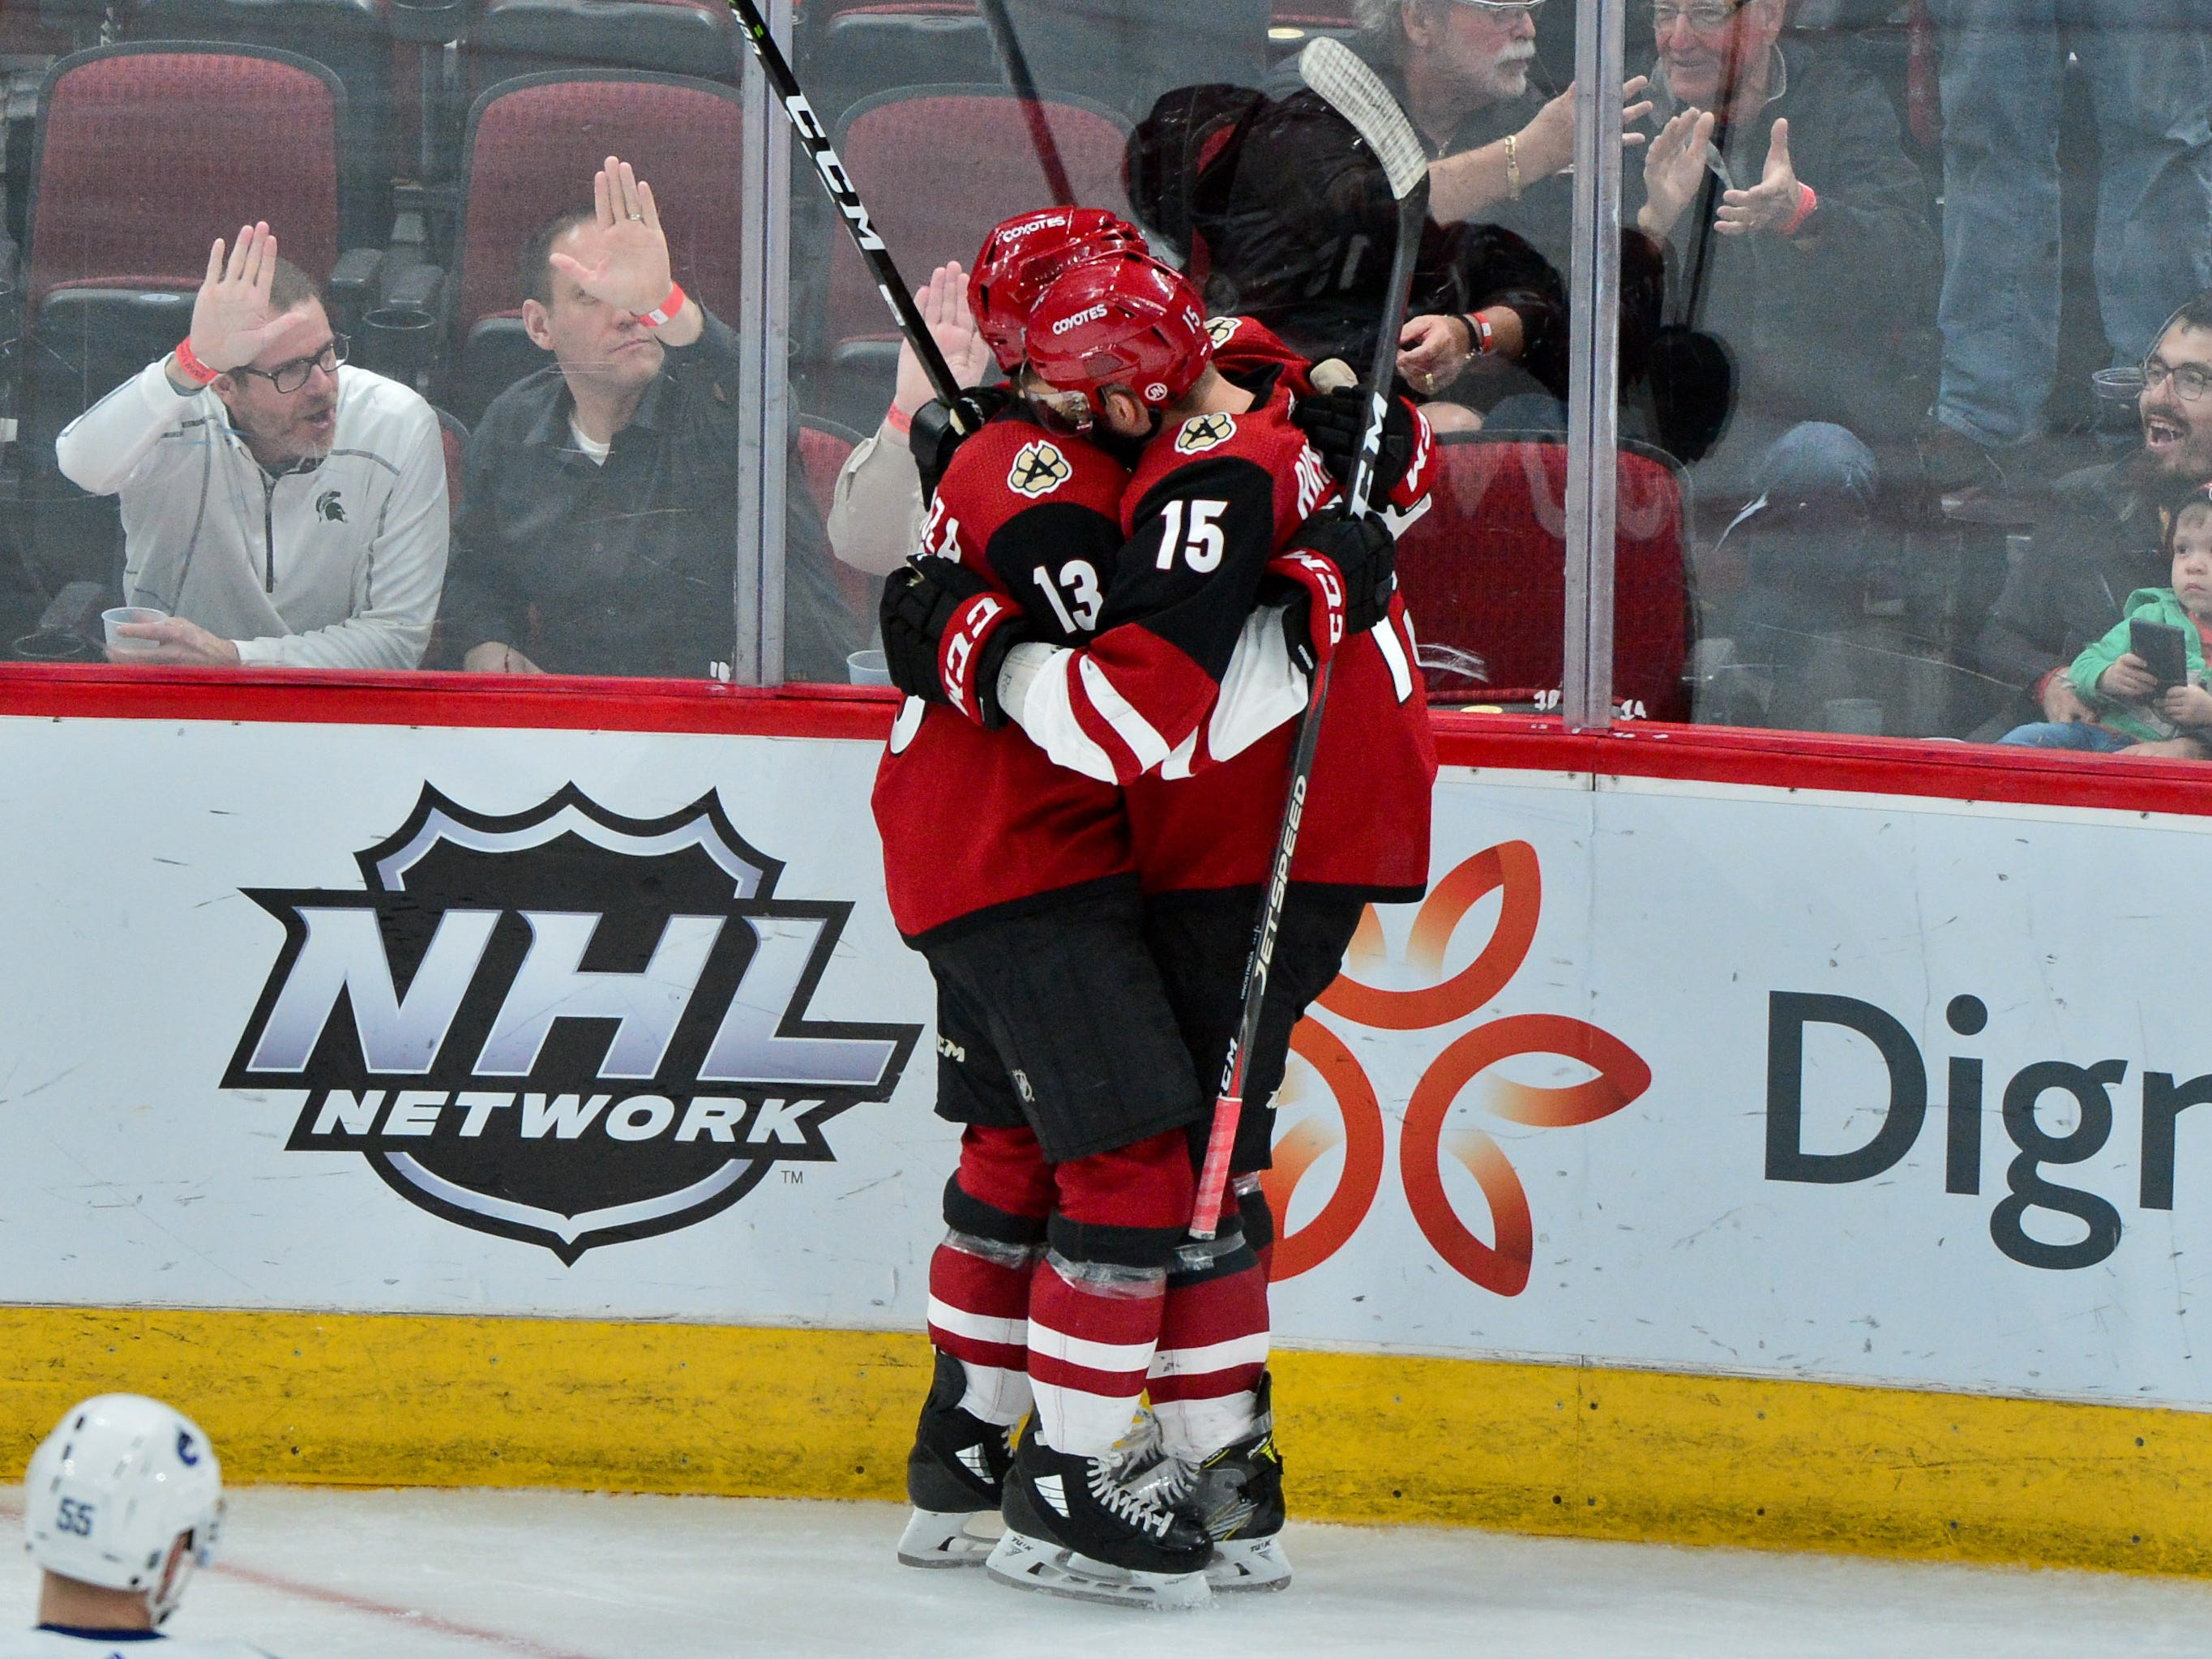 Feb 28, 2019; Glendale, AZ, USA; Arizona Coyotes center Brad Richardson (15) celebrates with center Vinnie Hinostroza (13) after scoring his fourth goal of the game during the third period against the Vancouver Canucks at Gila River Arena.